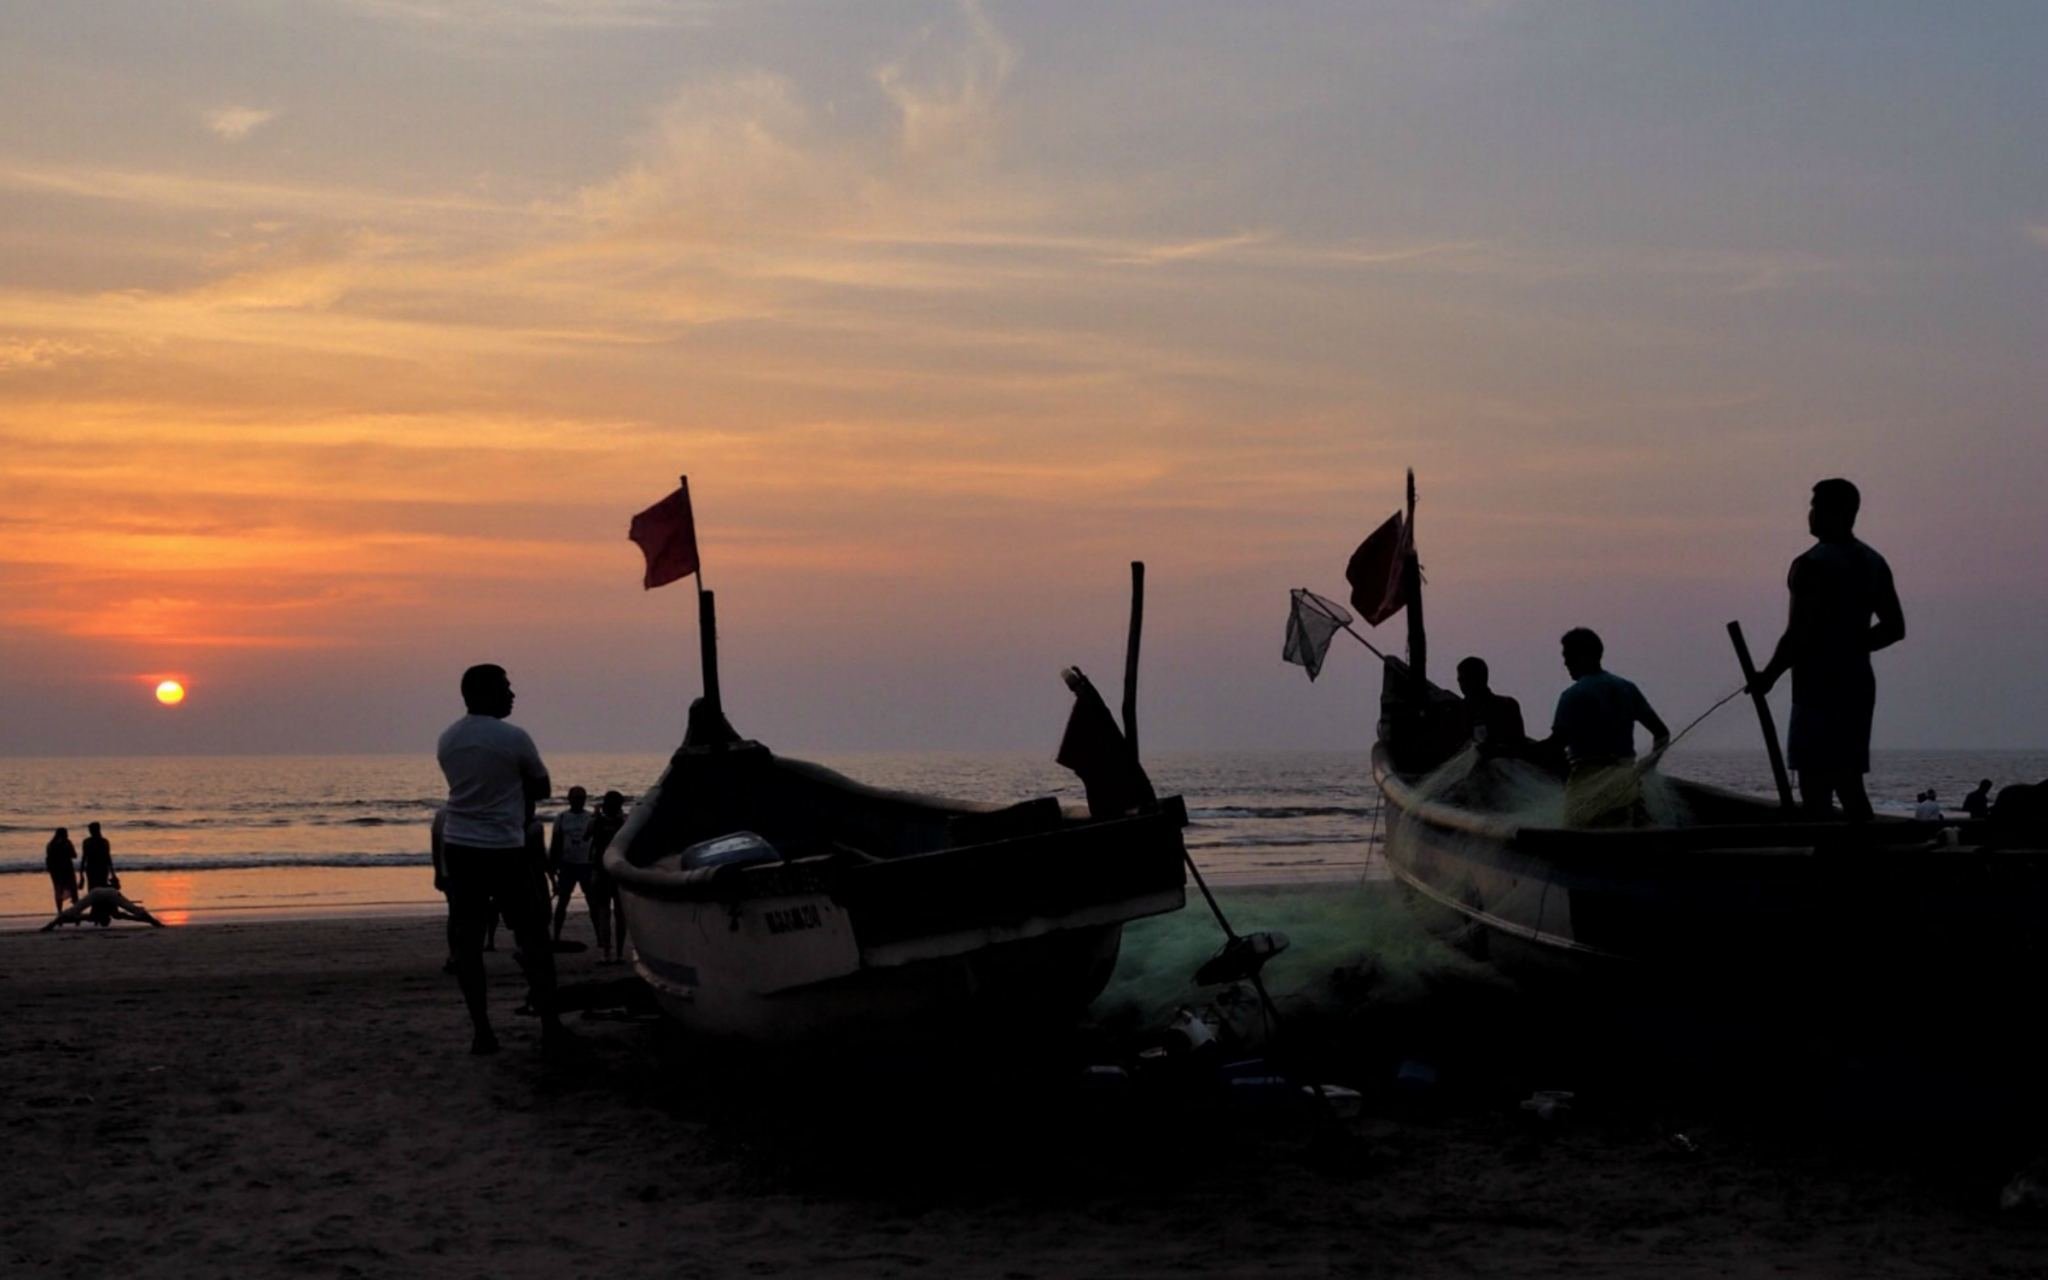 Fishing boats at sunset on Arambol Beach, North Goa